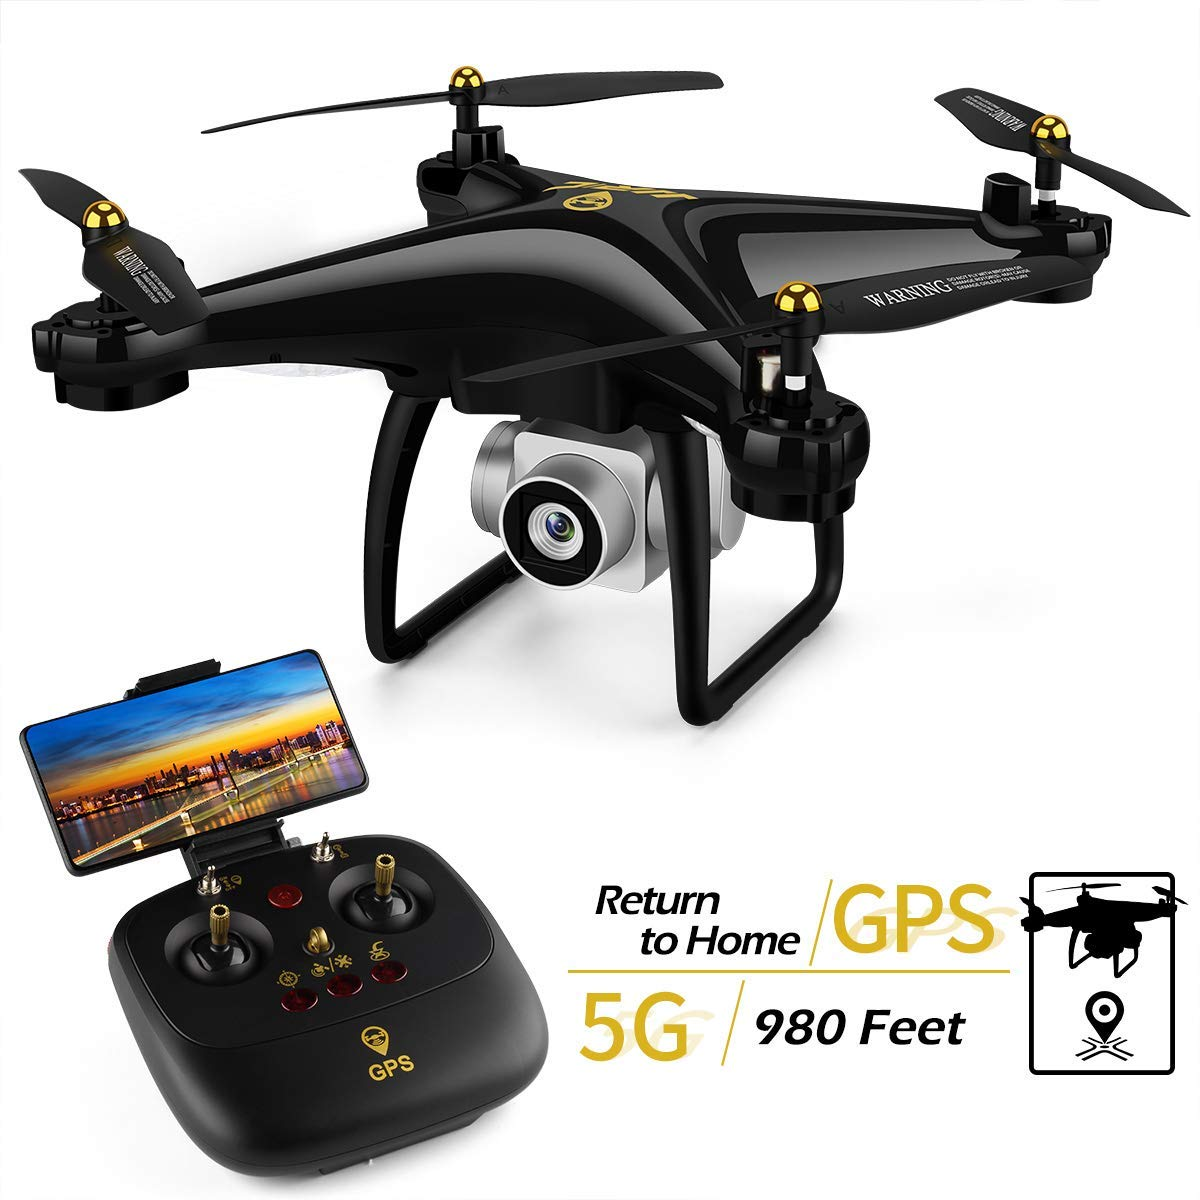 Smart Return Home with Headless Mode for Adults Black 40 Mins Flight Time 5G WiFi FPV Live Video Quadcopter Drone Follow Me JJRC H68G GPS RC Drone with 1080P HD Camera